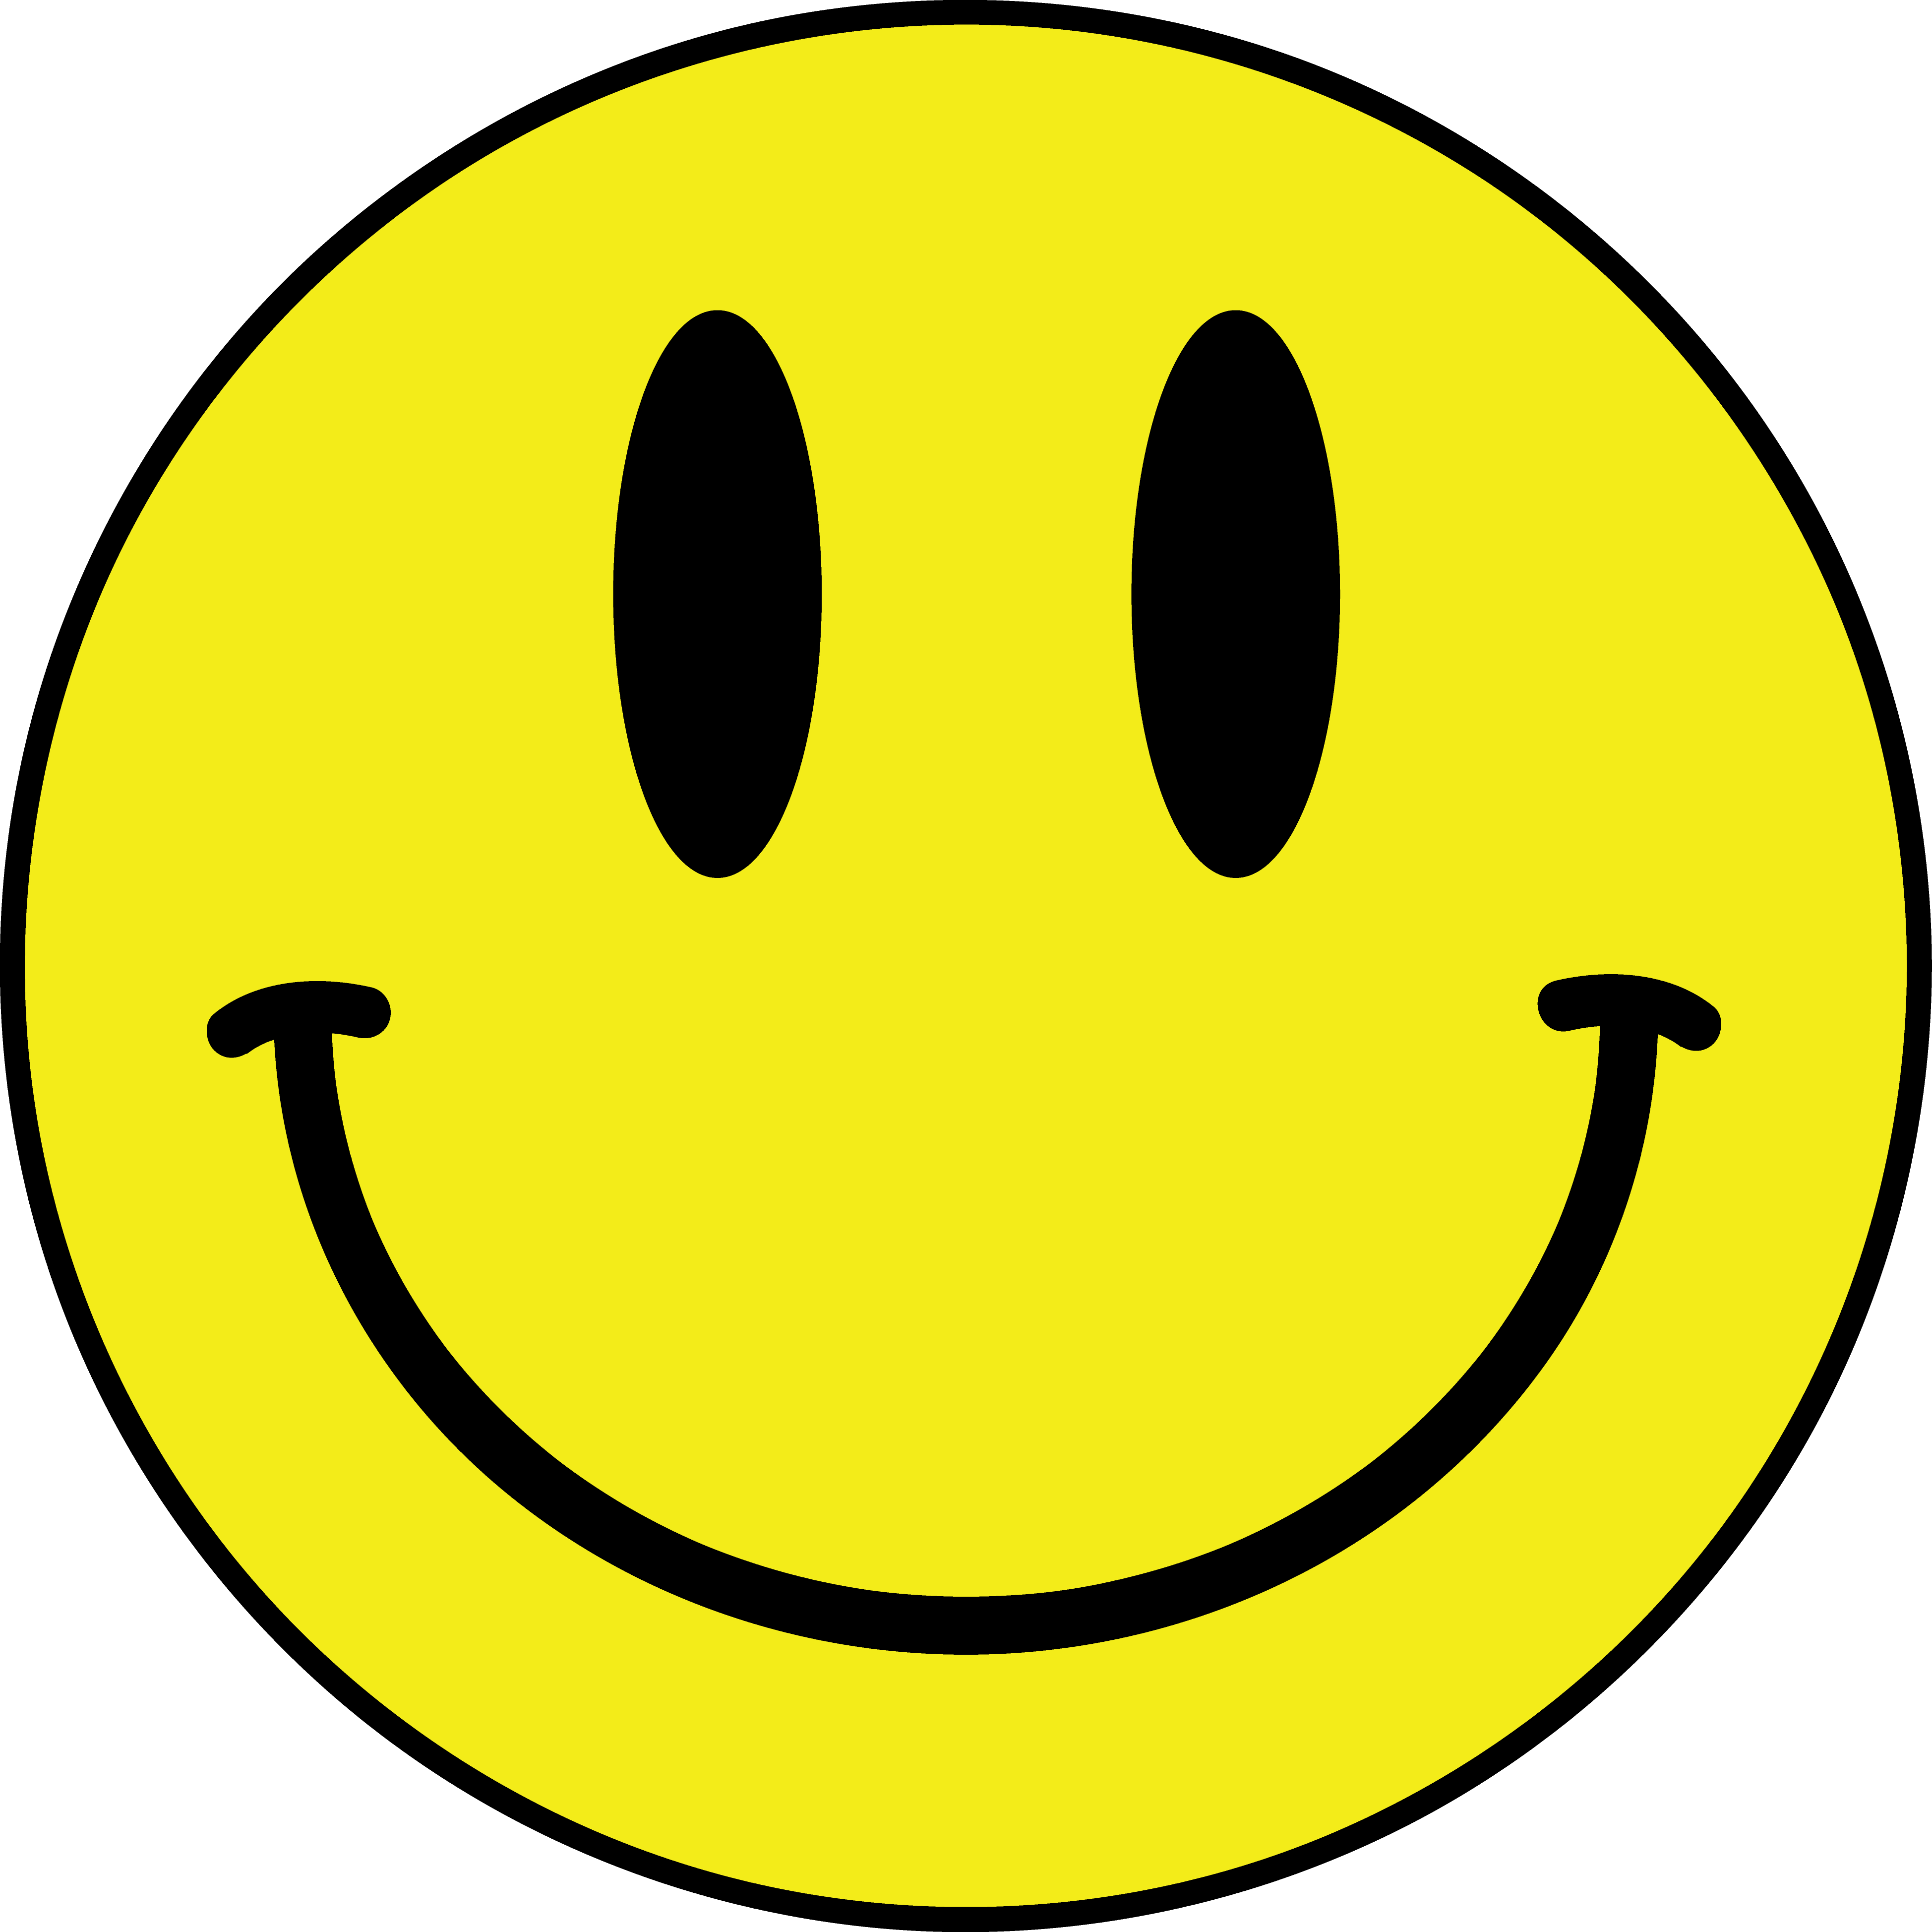 Smiley Looking Happy PNG Image - PurePNG | Free ... - Smile Clip Art Transparent